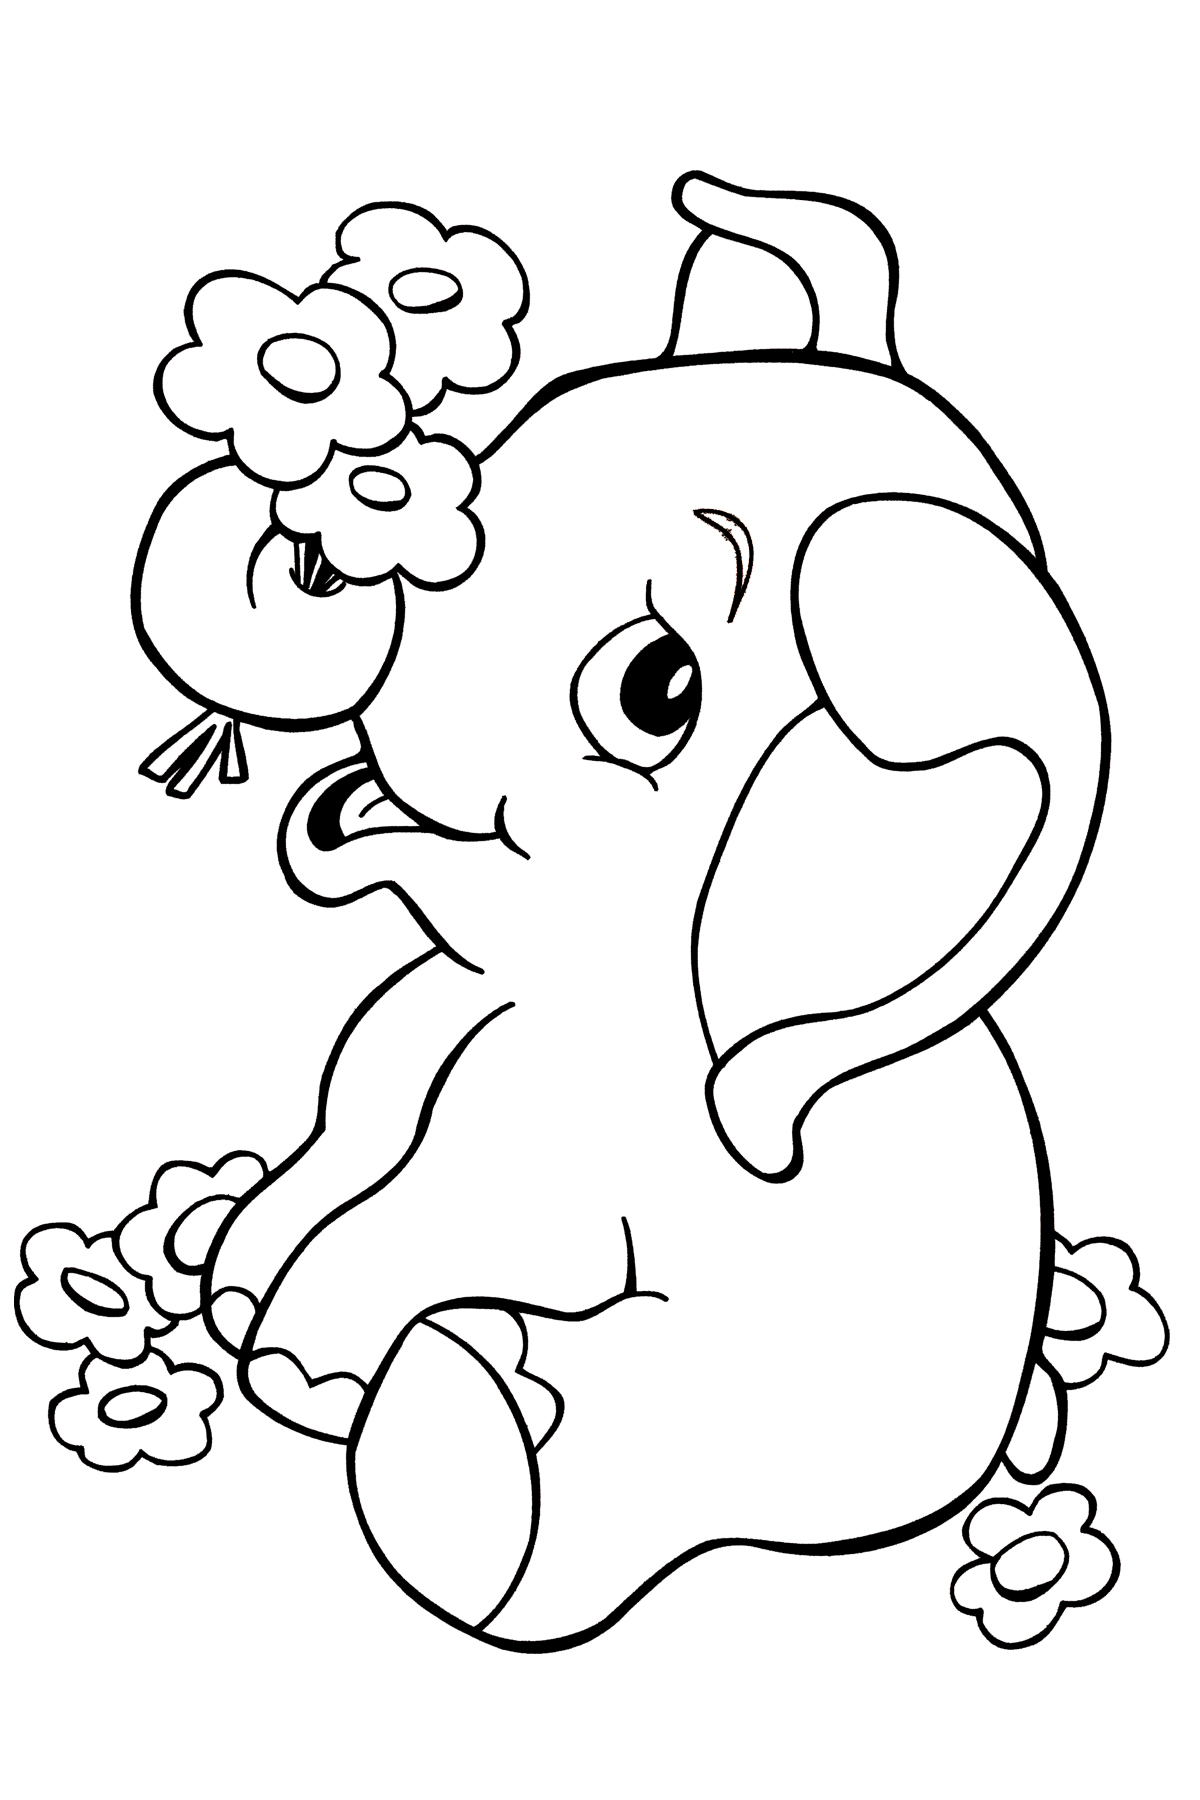 1200x1800 Baby Elephant Coloring Pages Print Printable For Humorous Draw